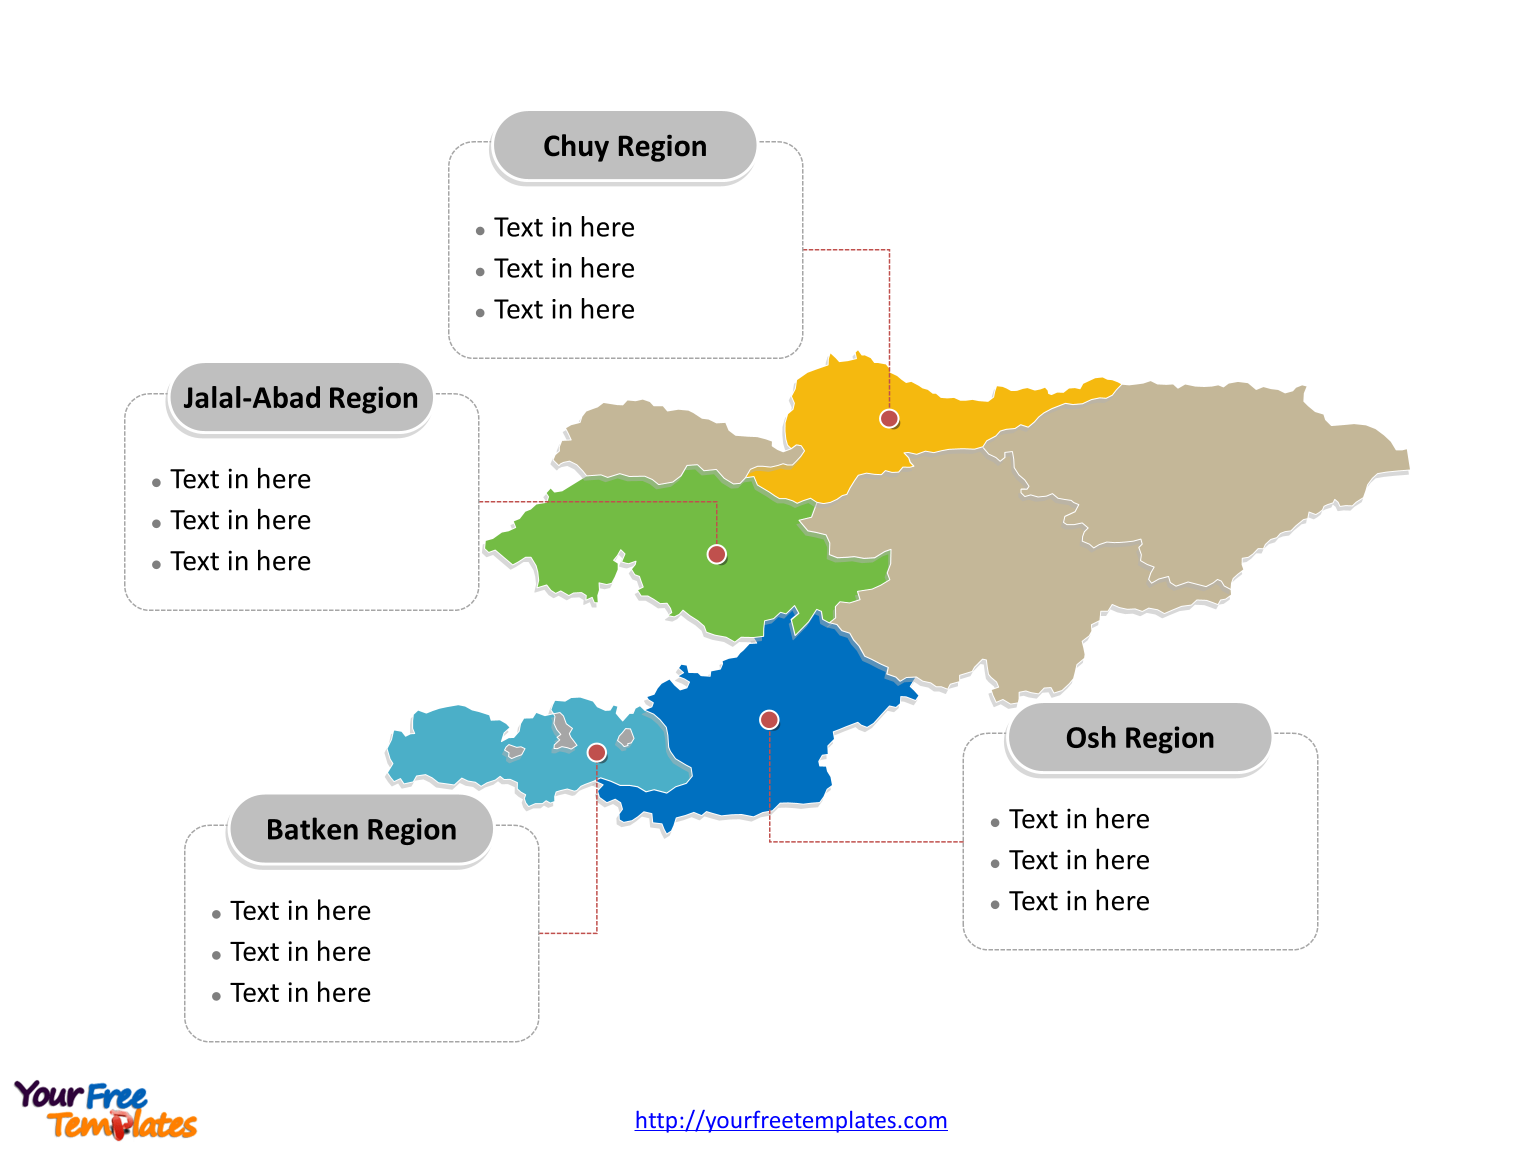 Kyrgyzstan Editable map of political divisions labeled with major Regions